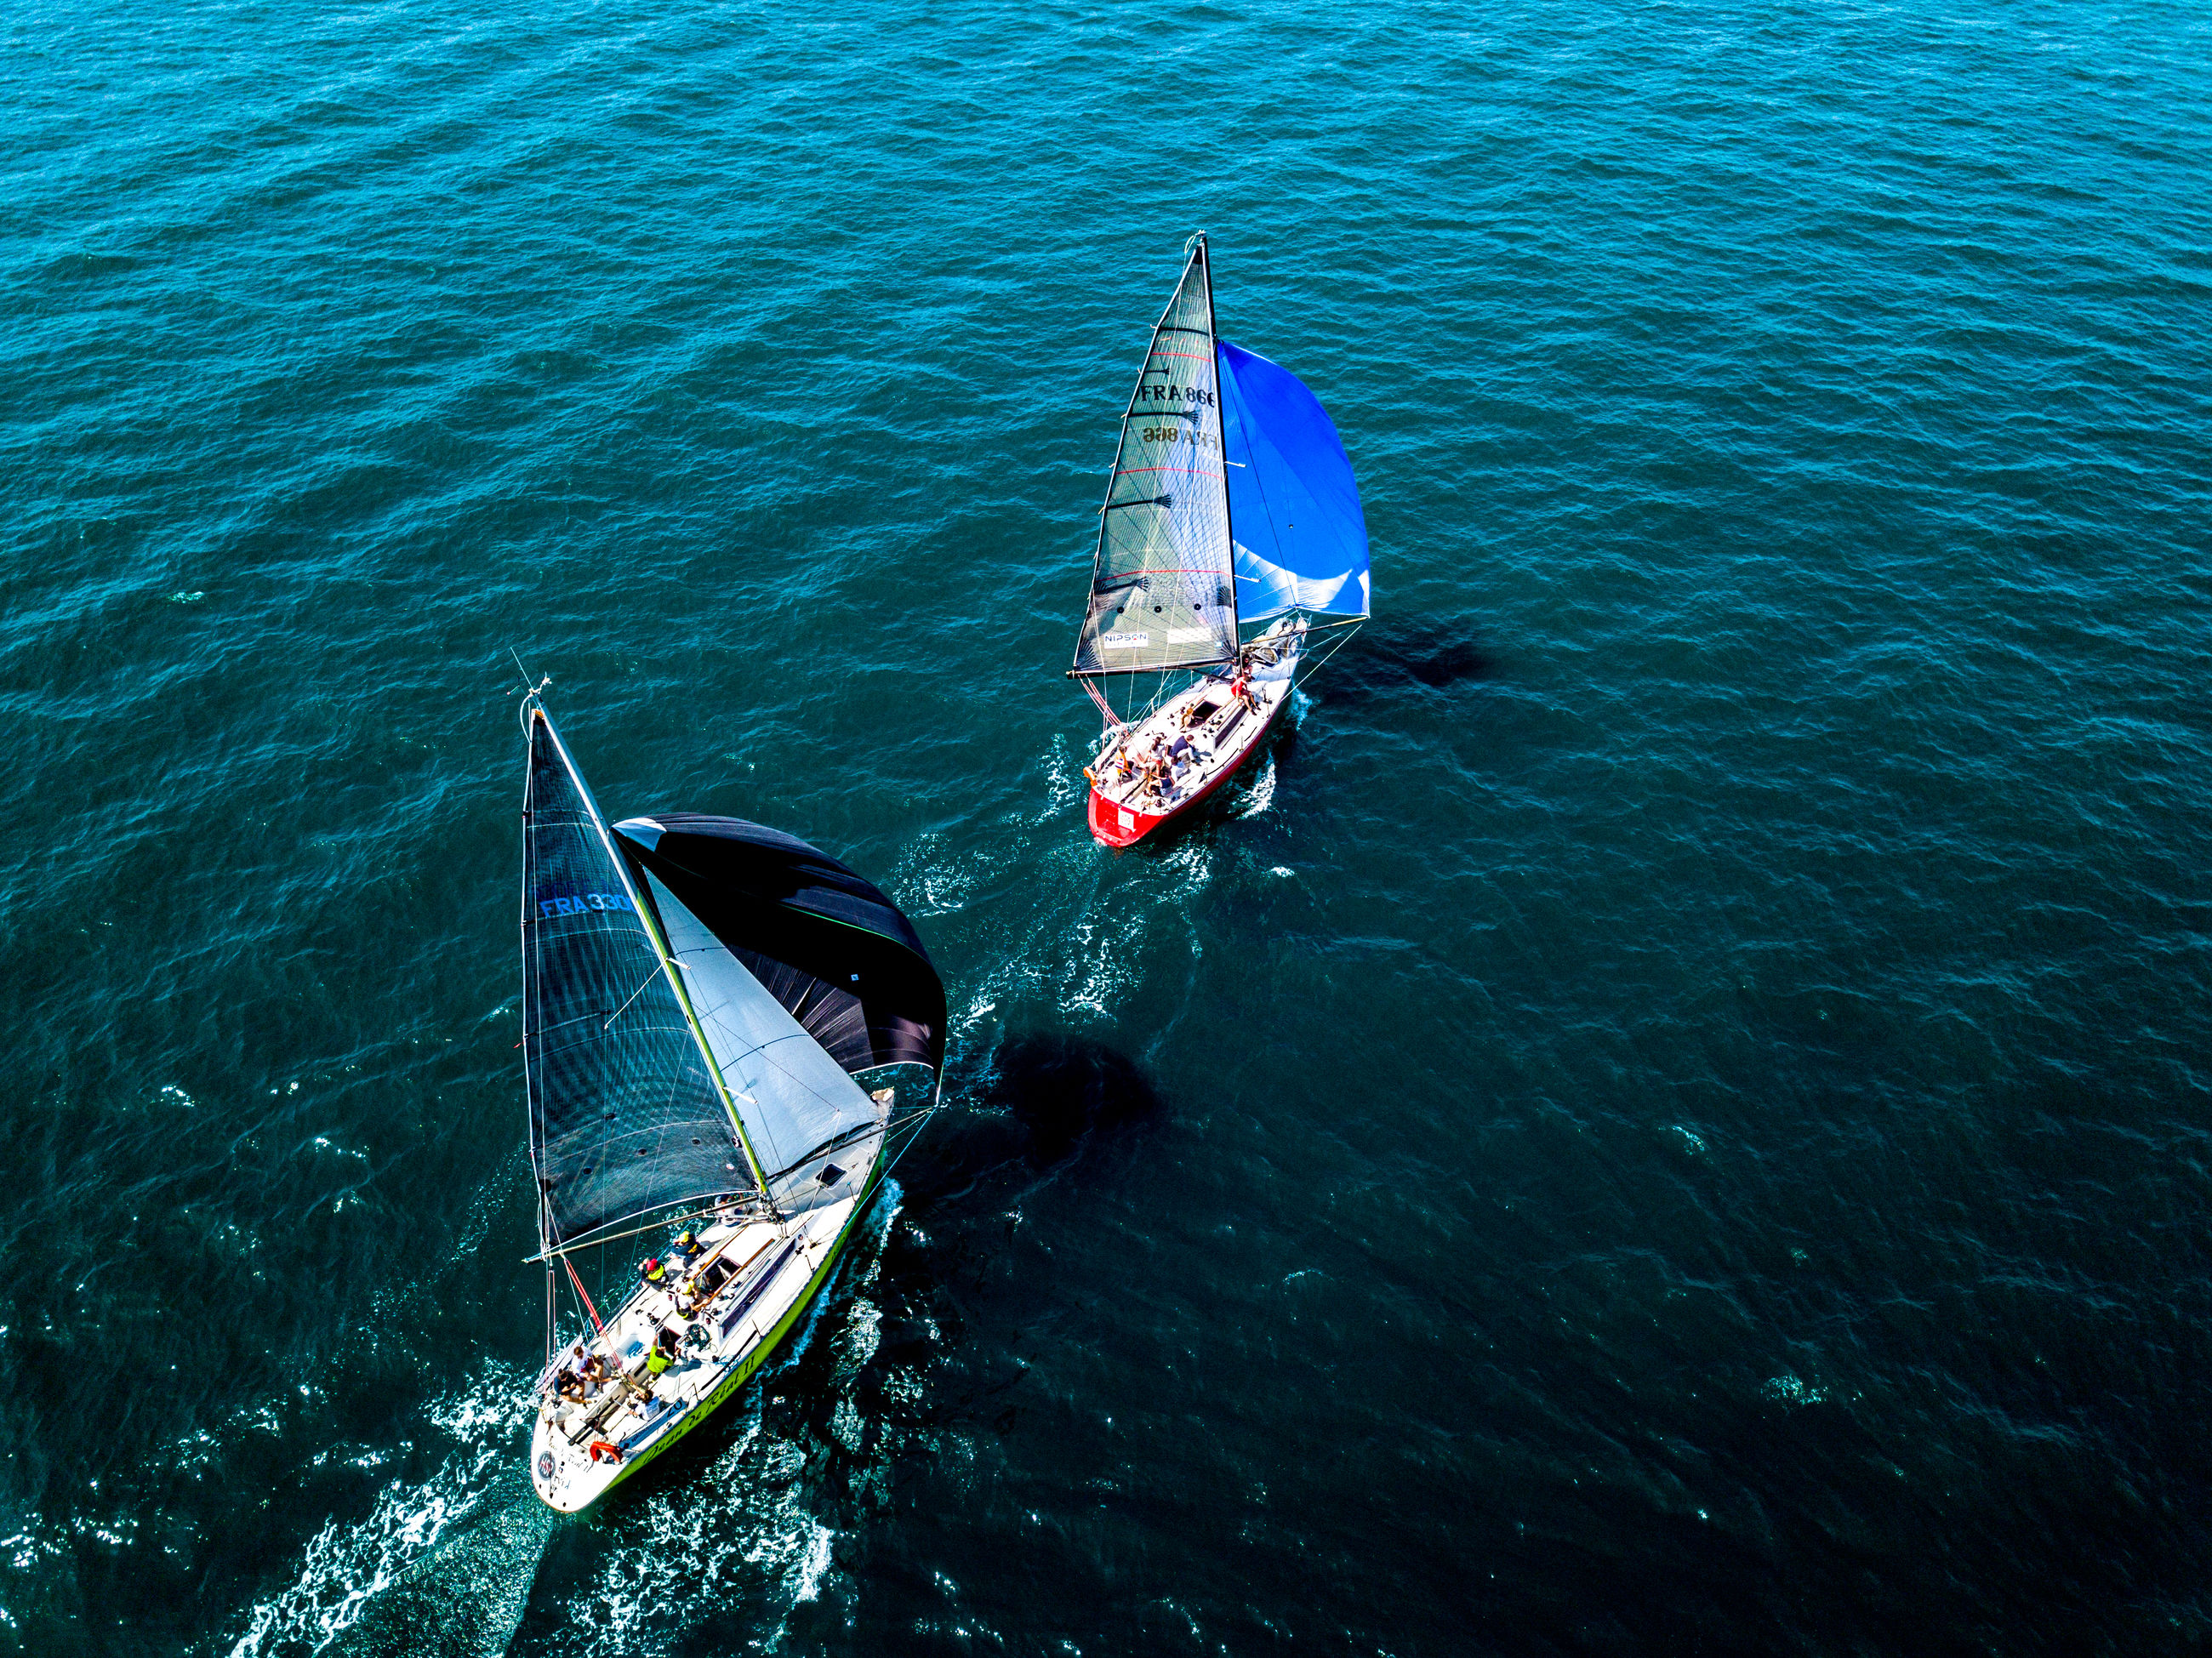 nautical vessel, water, transportation, mode of transportation, sea, high angle view, waterfront, nature, beauty in nature, day, outdoors, travel, sailing, sailboat, scenics - nature, rippled, blue, no people, yacht